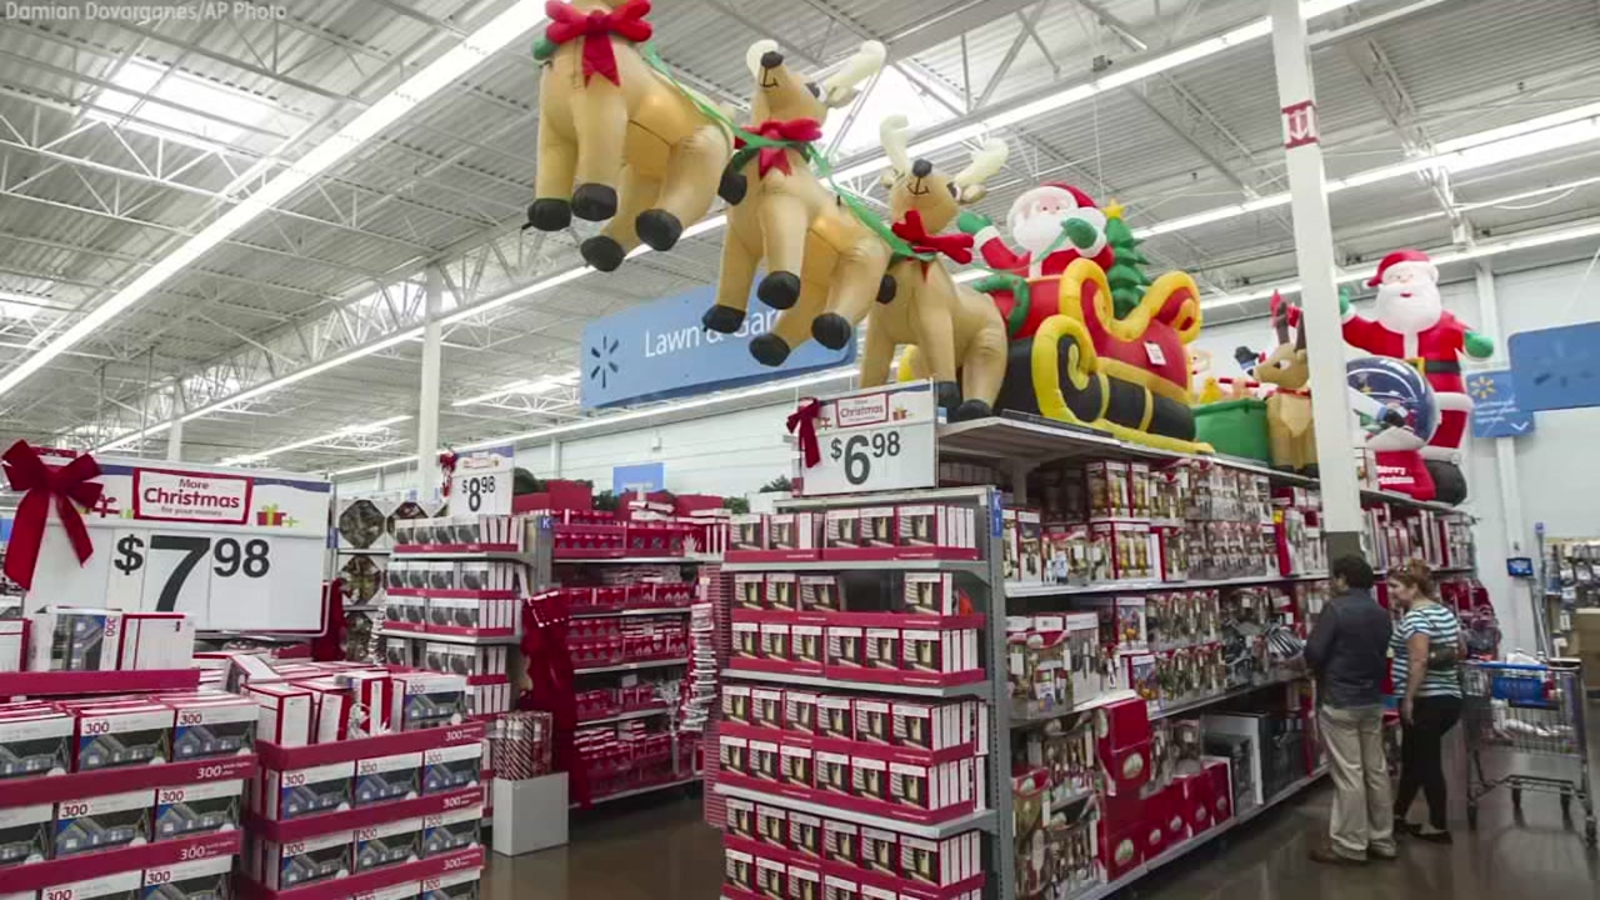 Grocery stores open on Christmas Eve and Christmas - ABC11 Raleigh-Durham